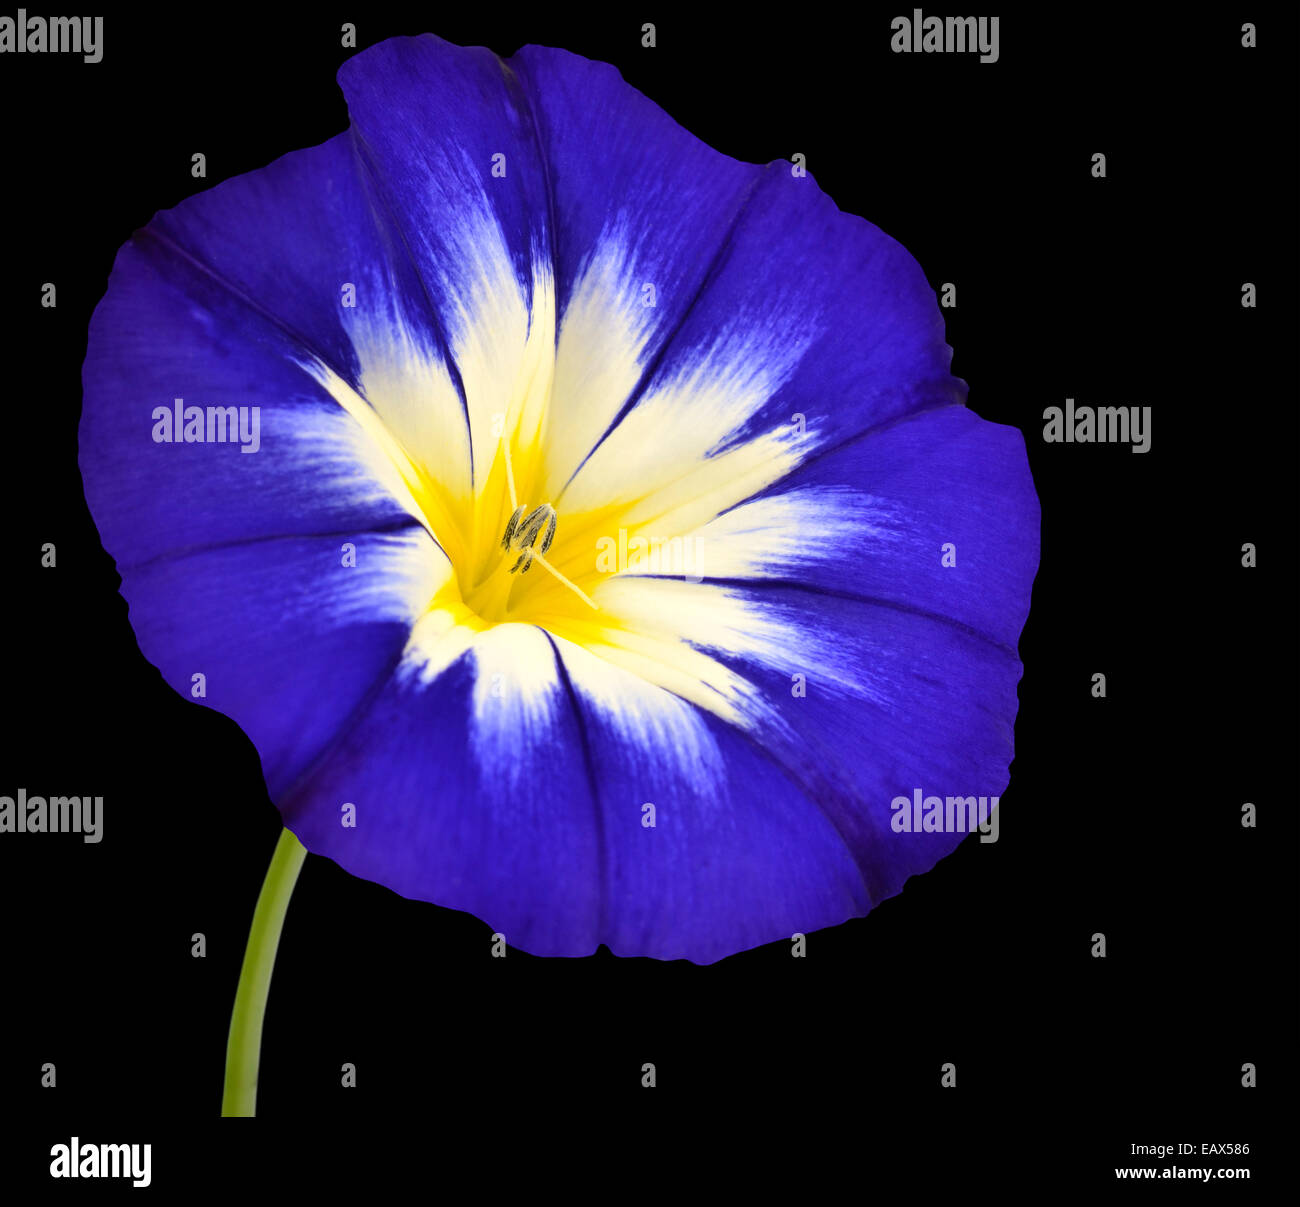 Blue Flower With White Yellow Star Shaped Center With Green Stick